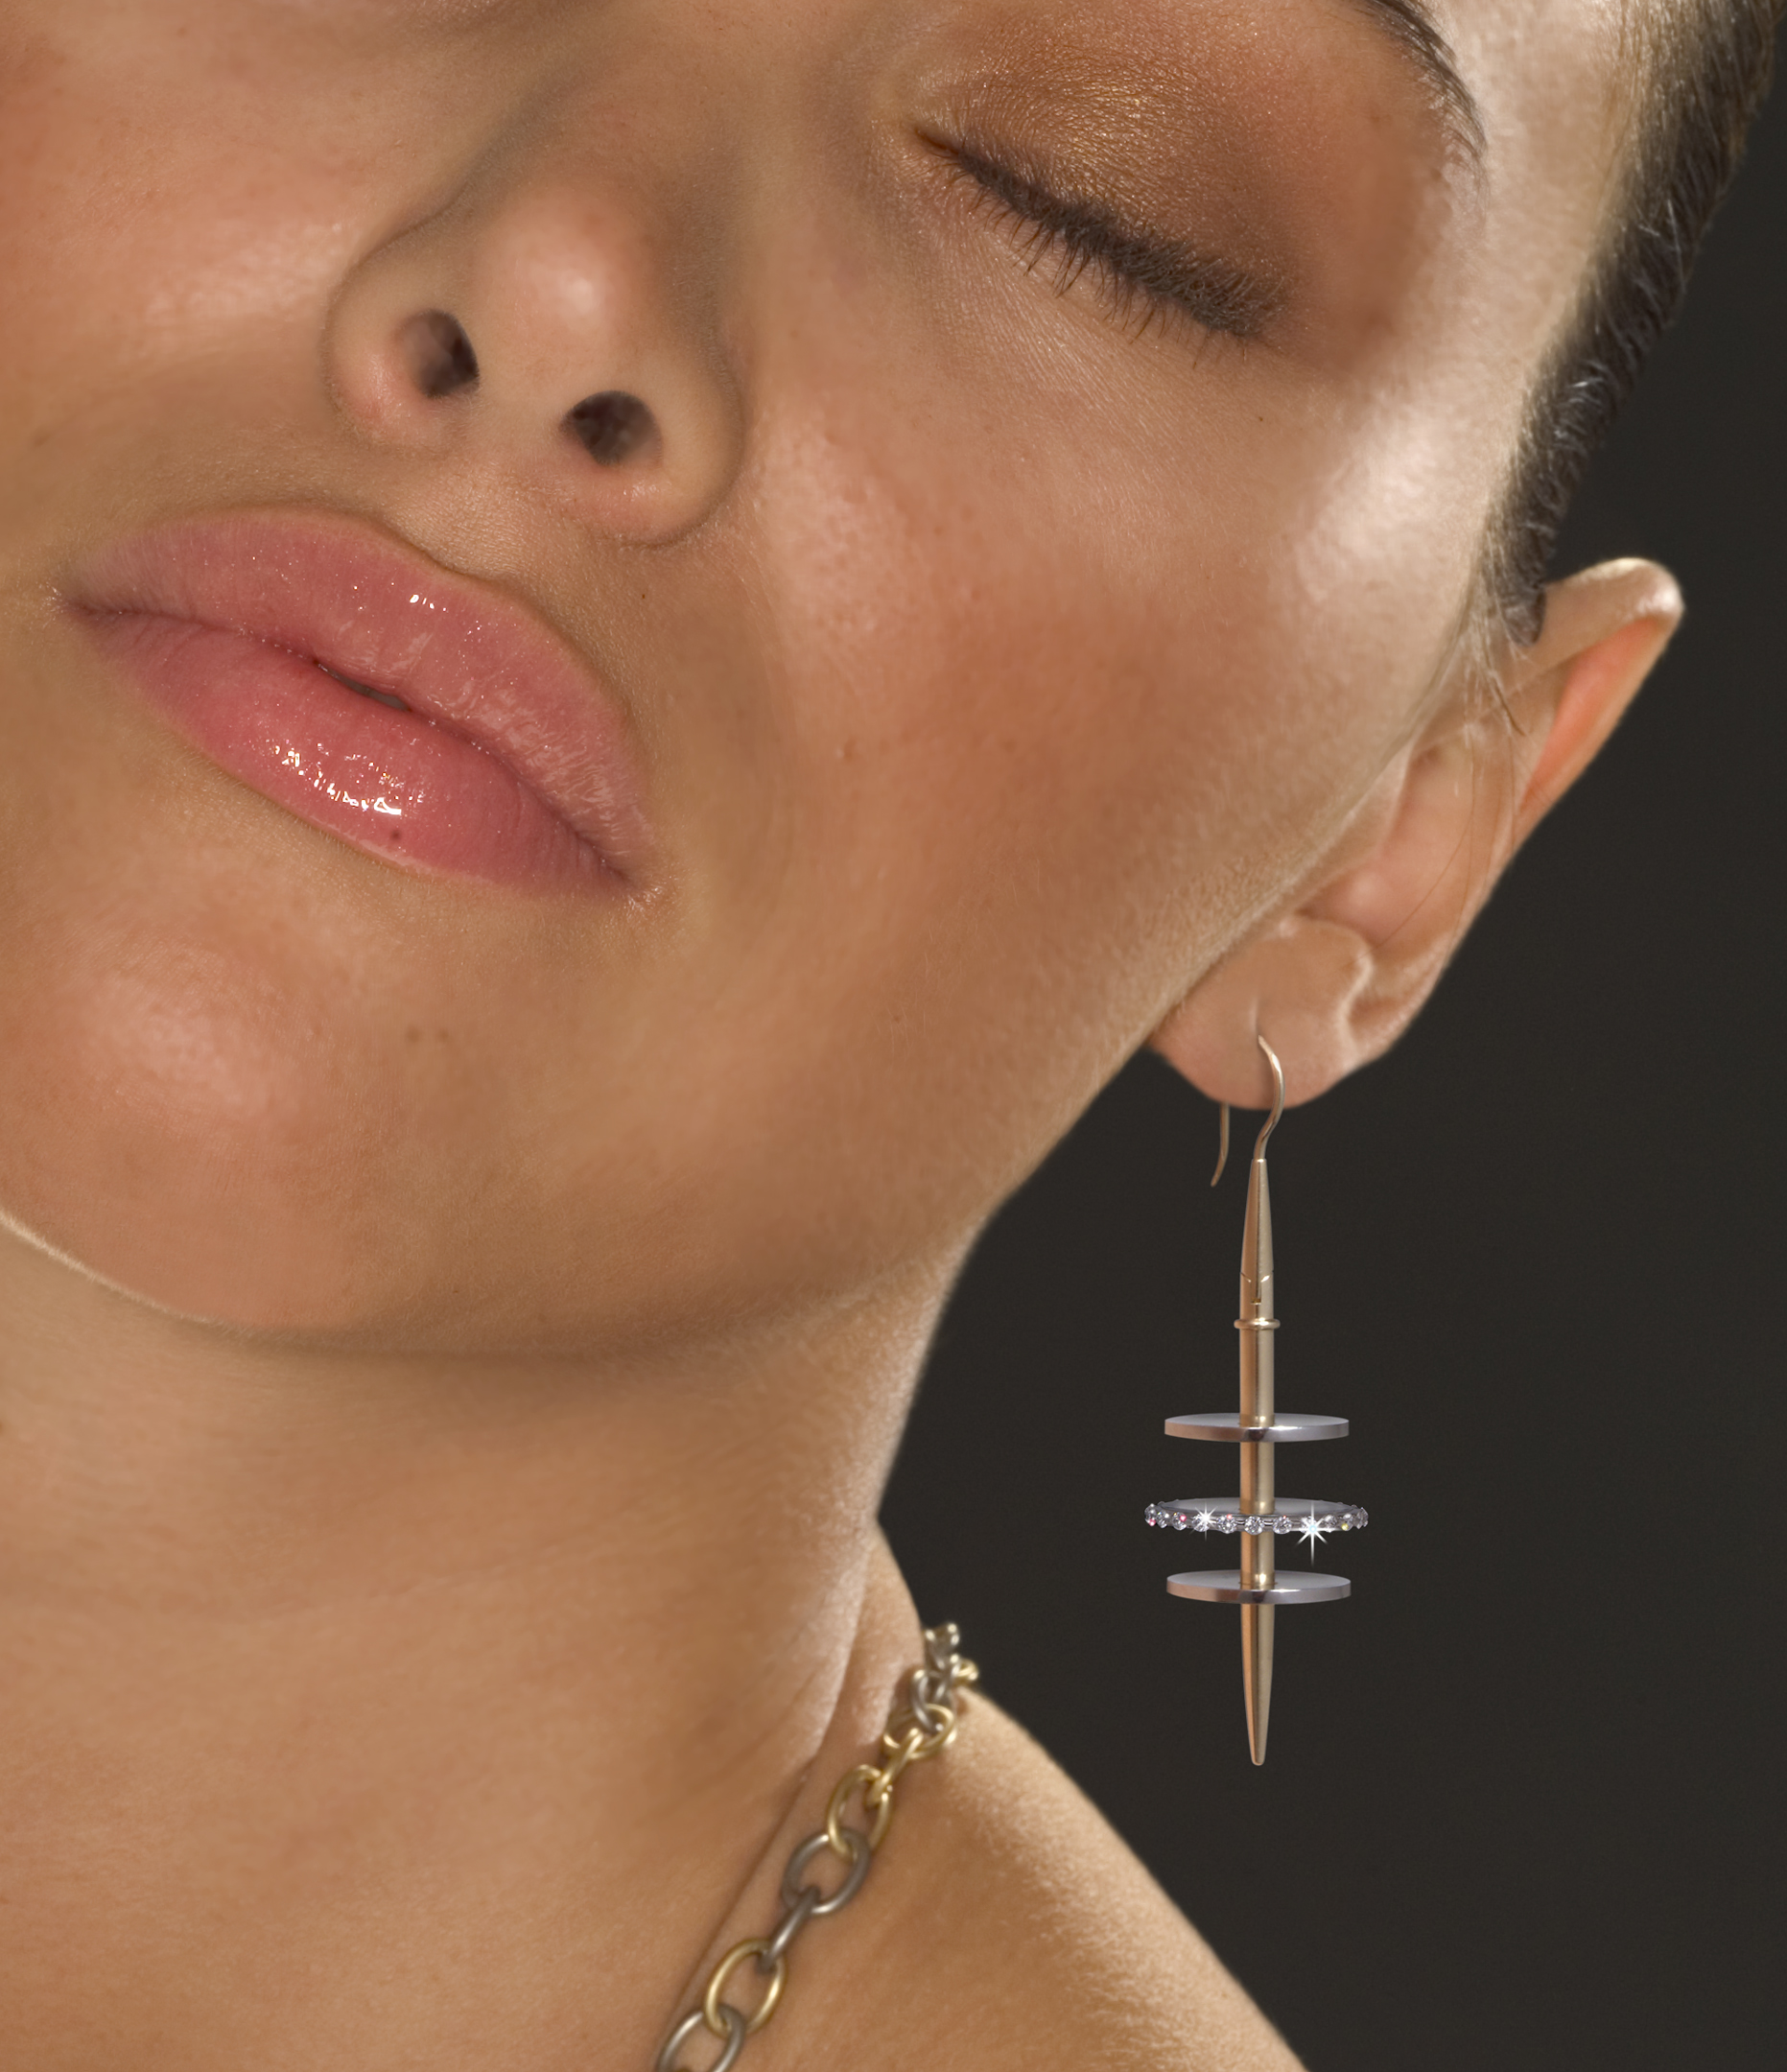 Steven Kretchmer Venus Earrings